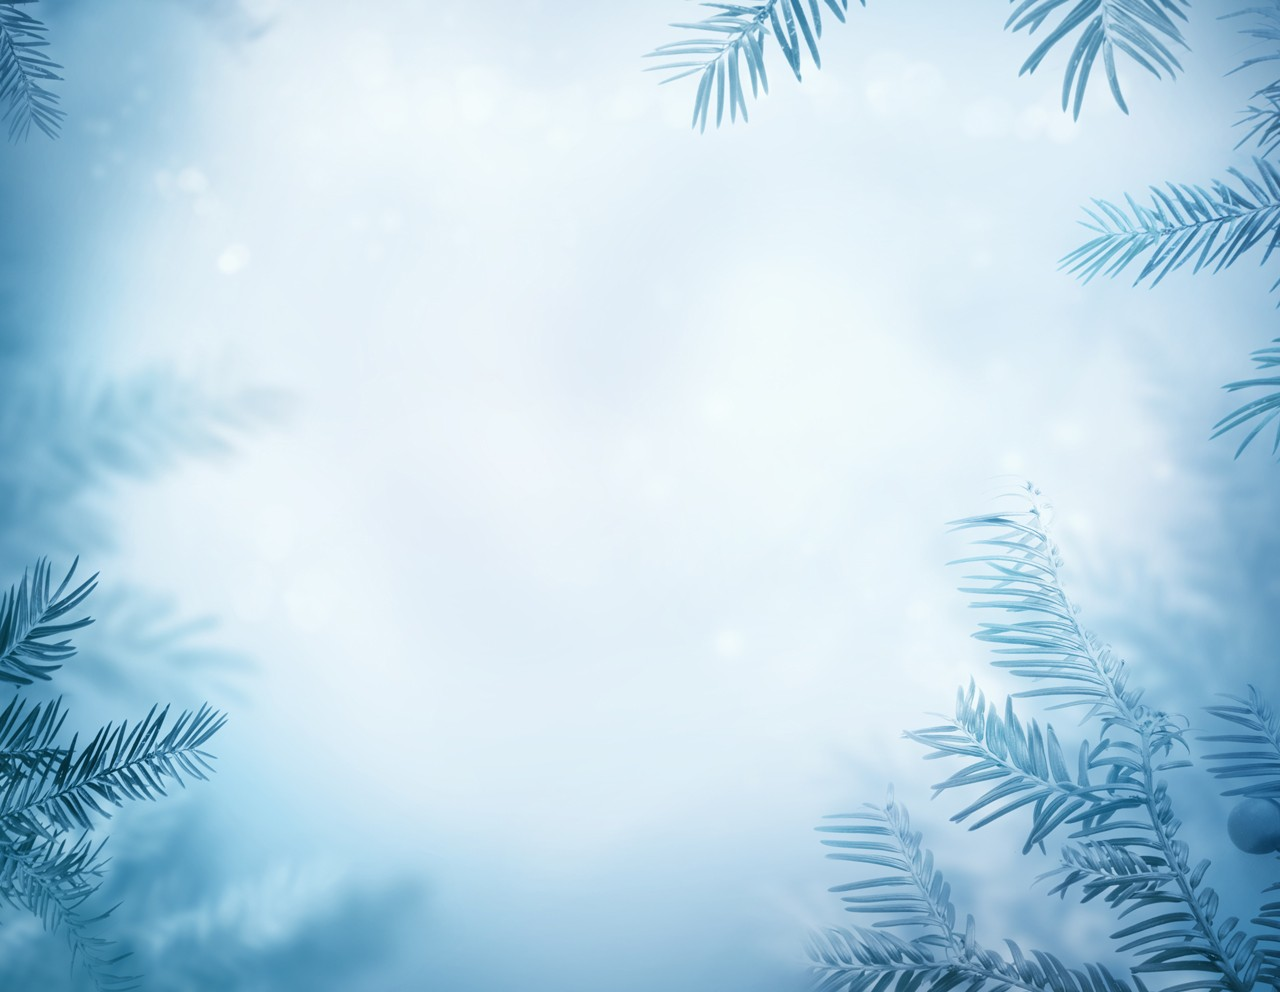 Winter Background 10png 1280x992